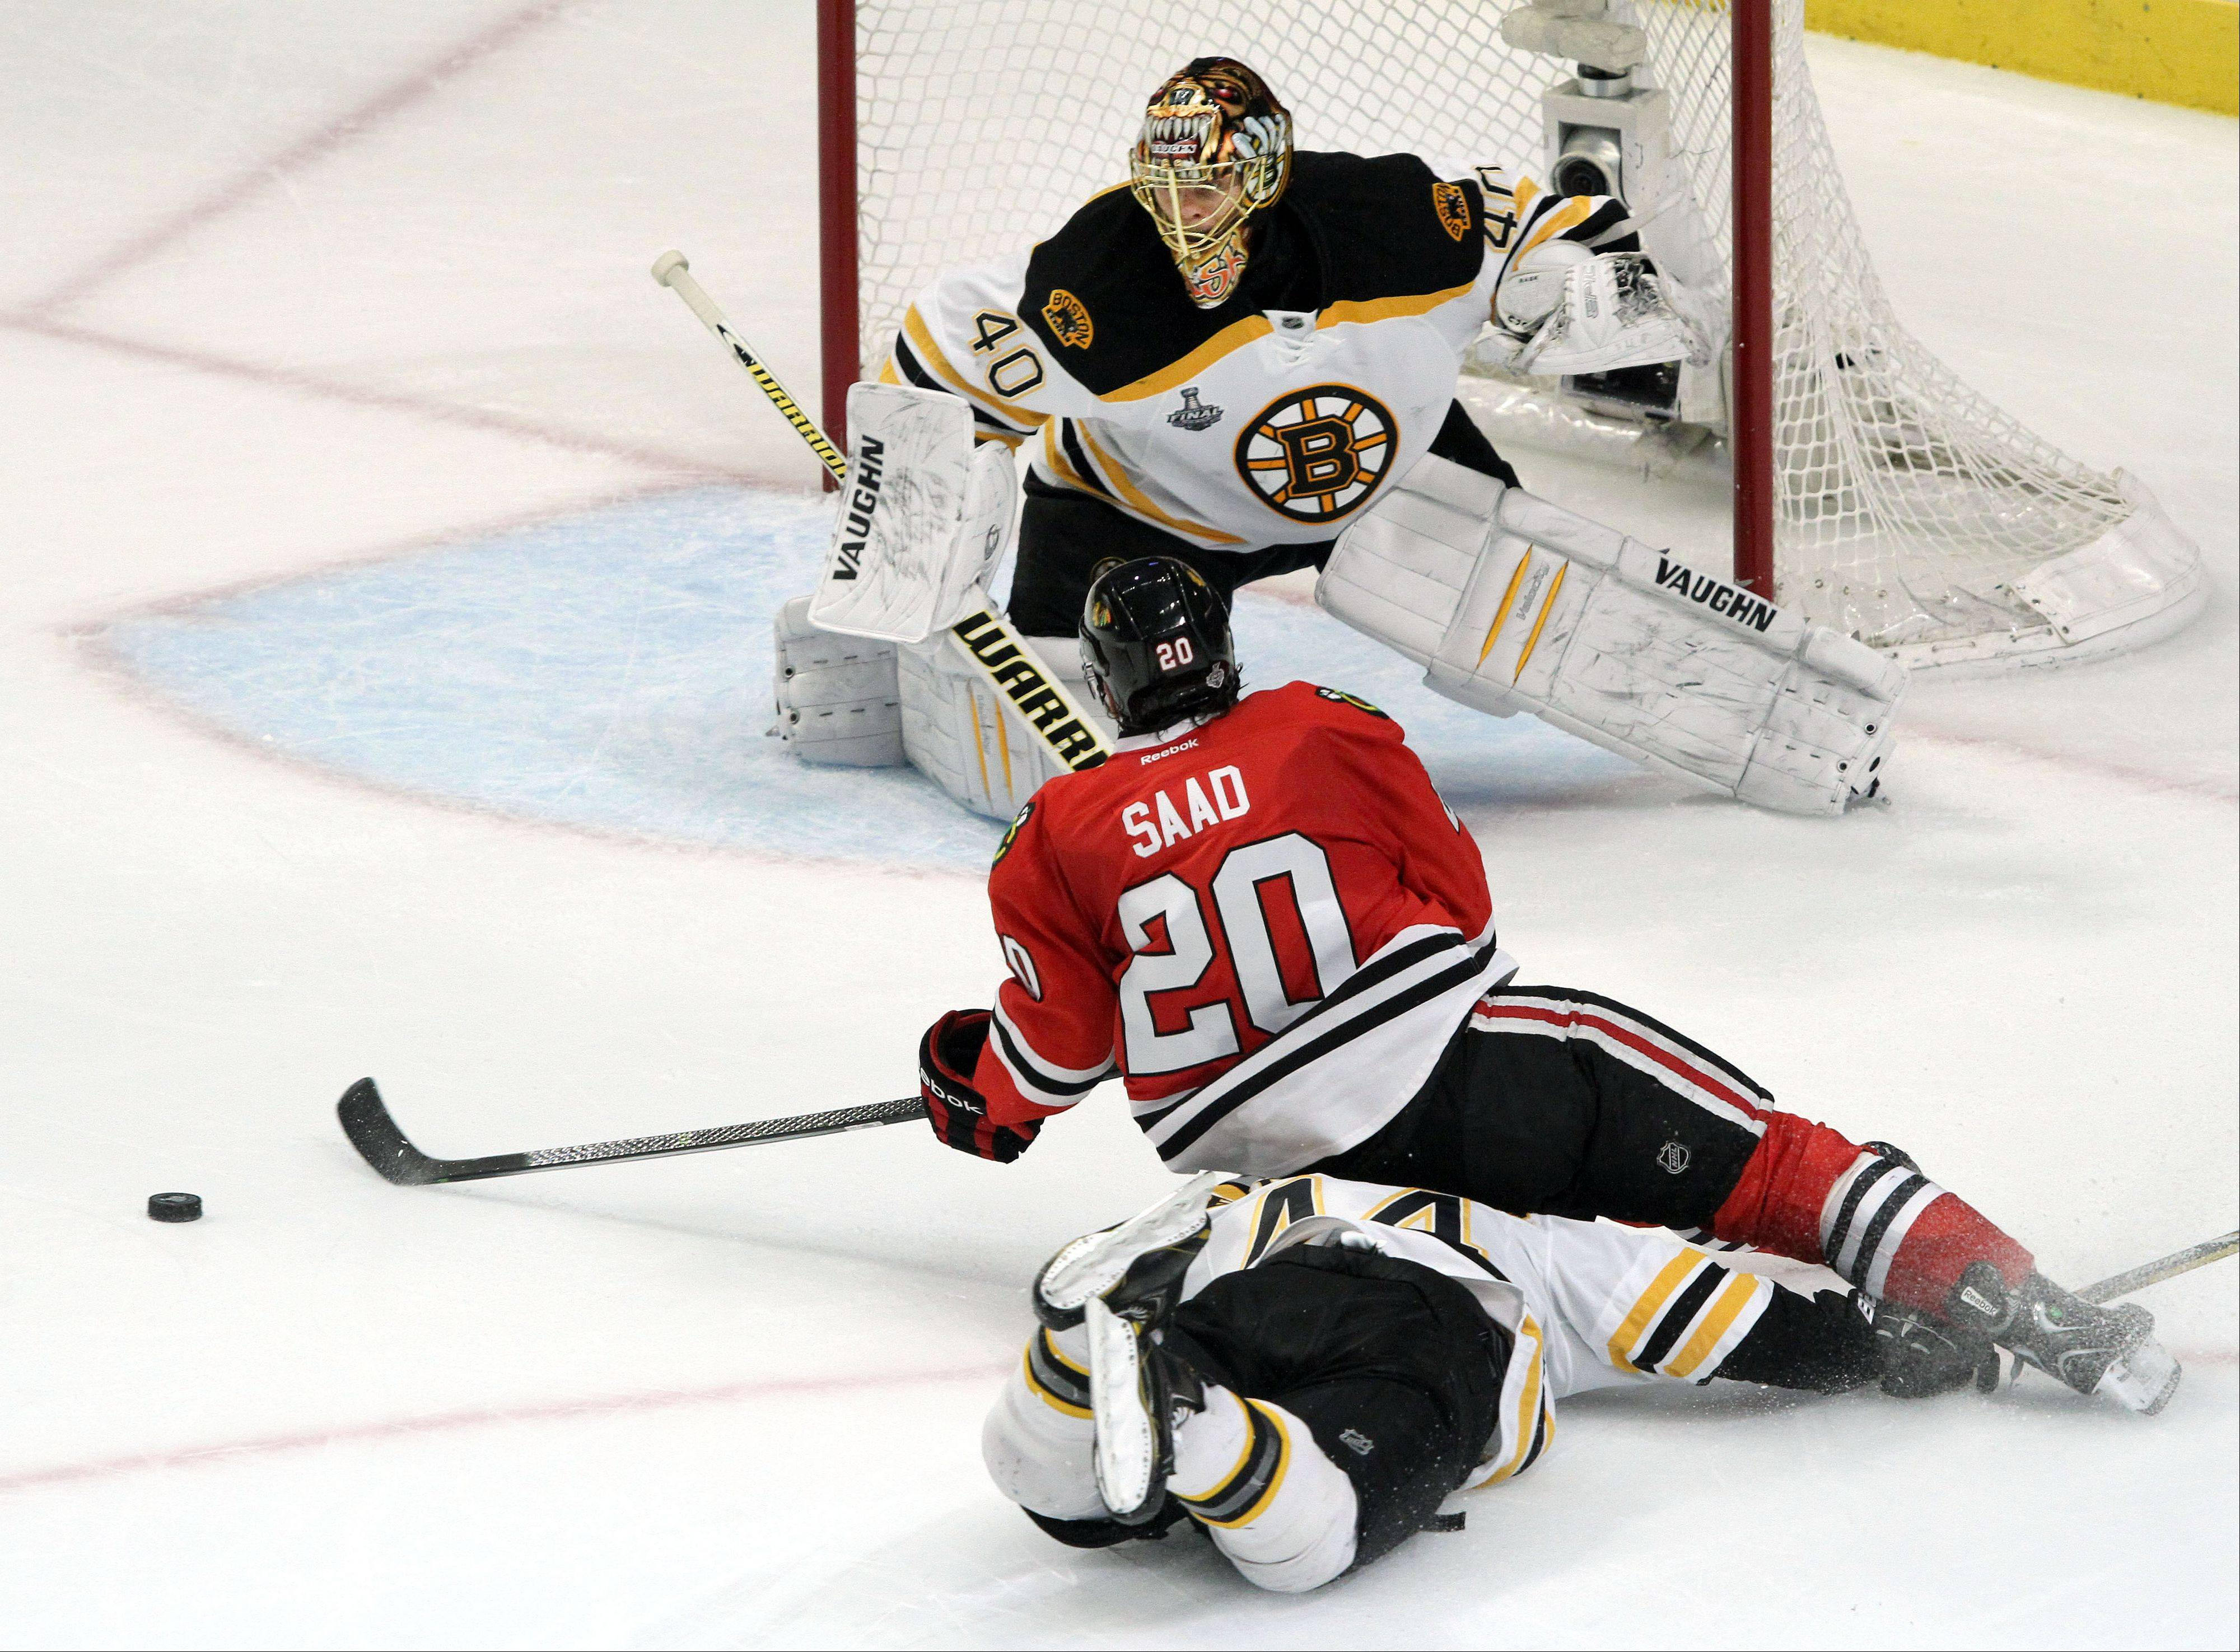 The Blackhawks� Brandon Saad gets tripped by Bruins defenseman Dennis Seidenberg during Game 2 of the Stanley Cup Final at the United Center on Saturday.